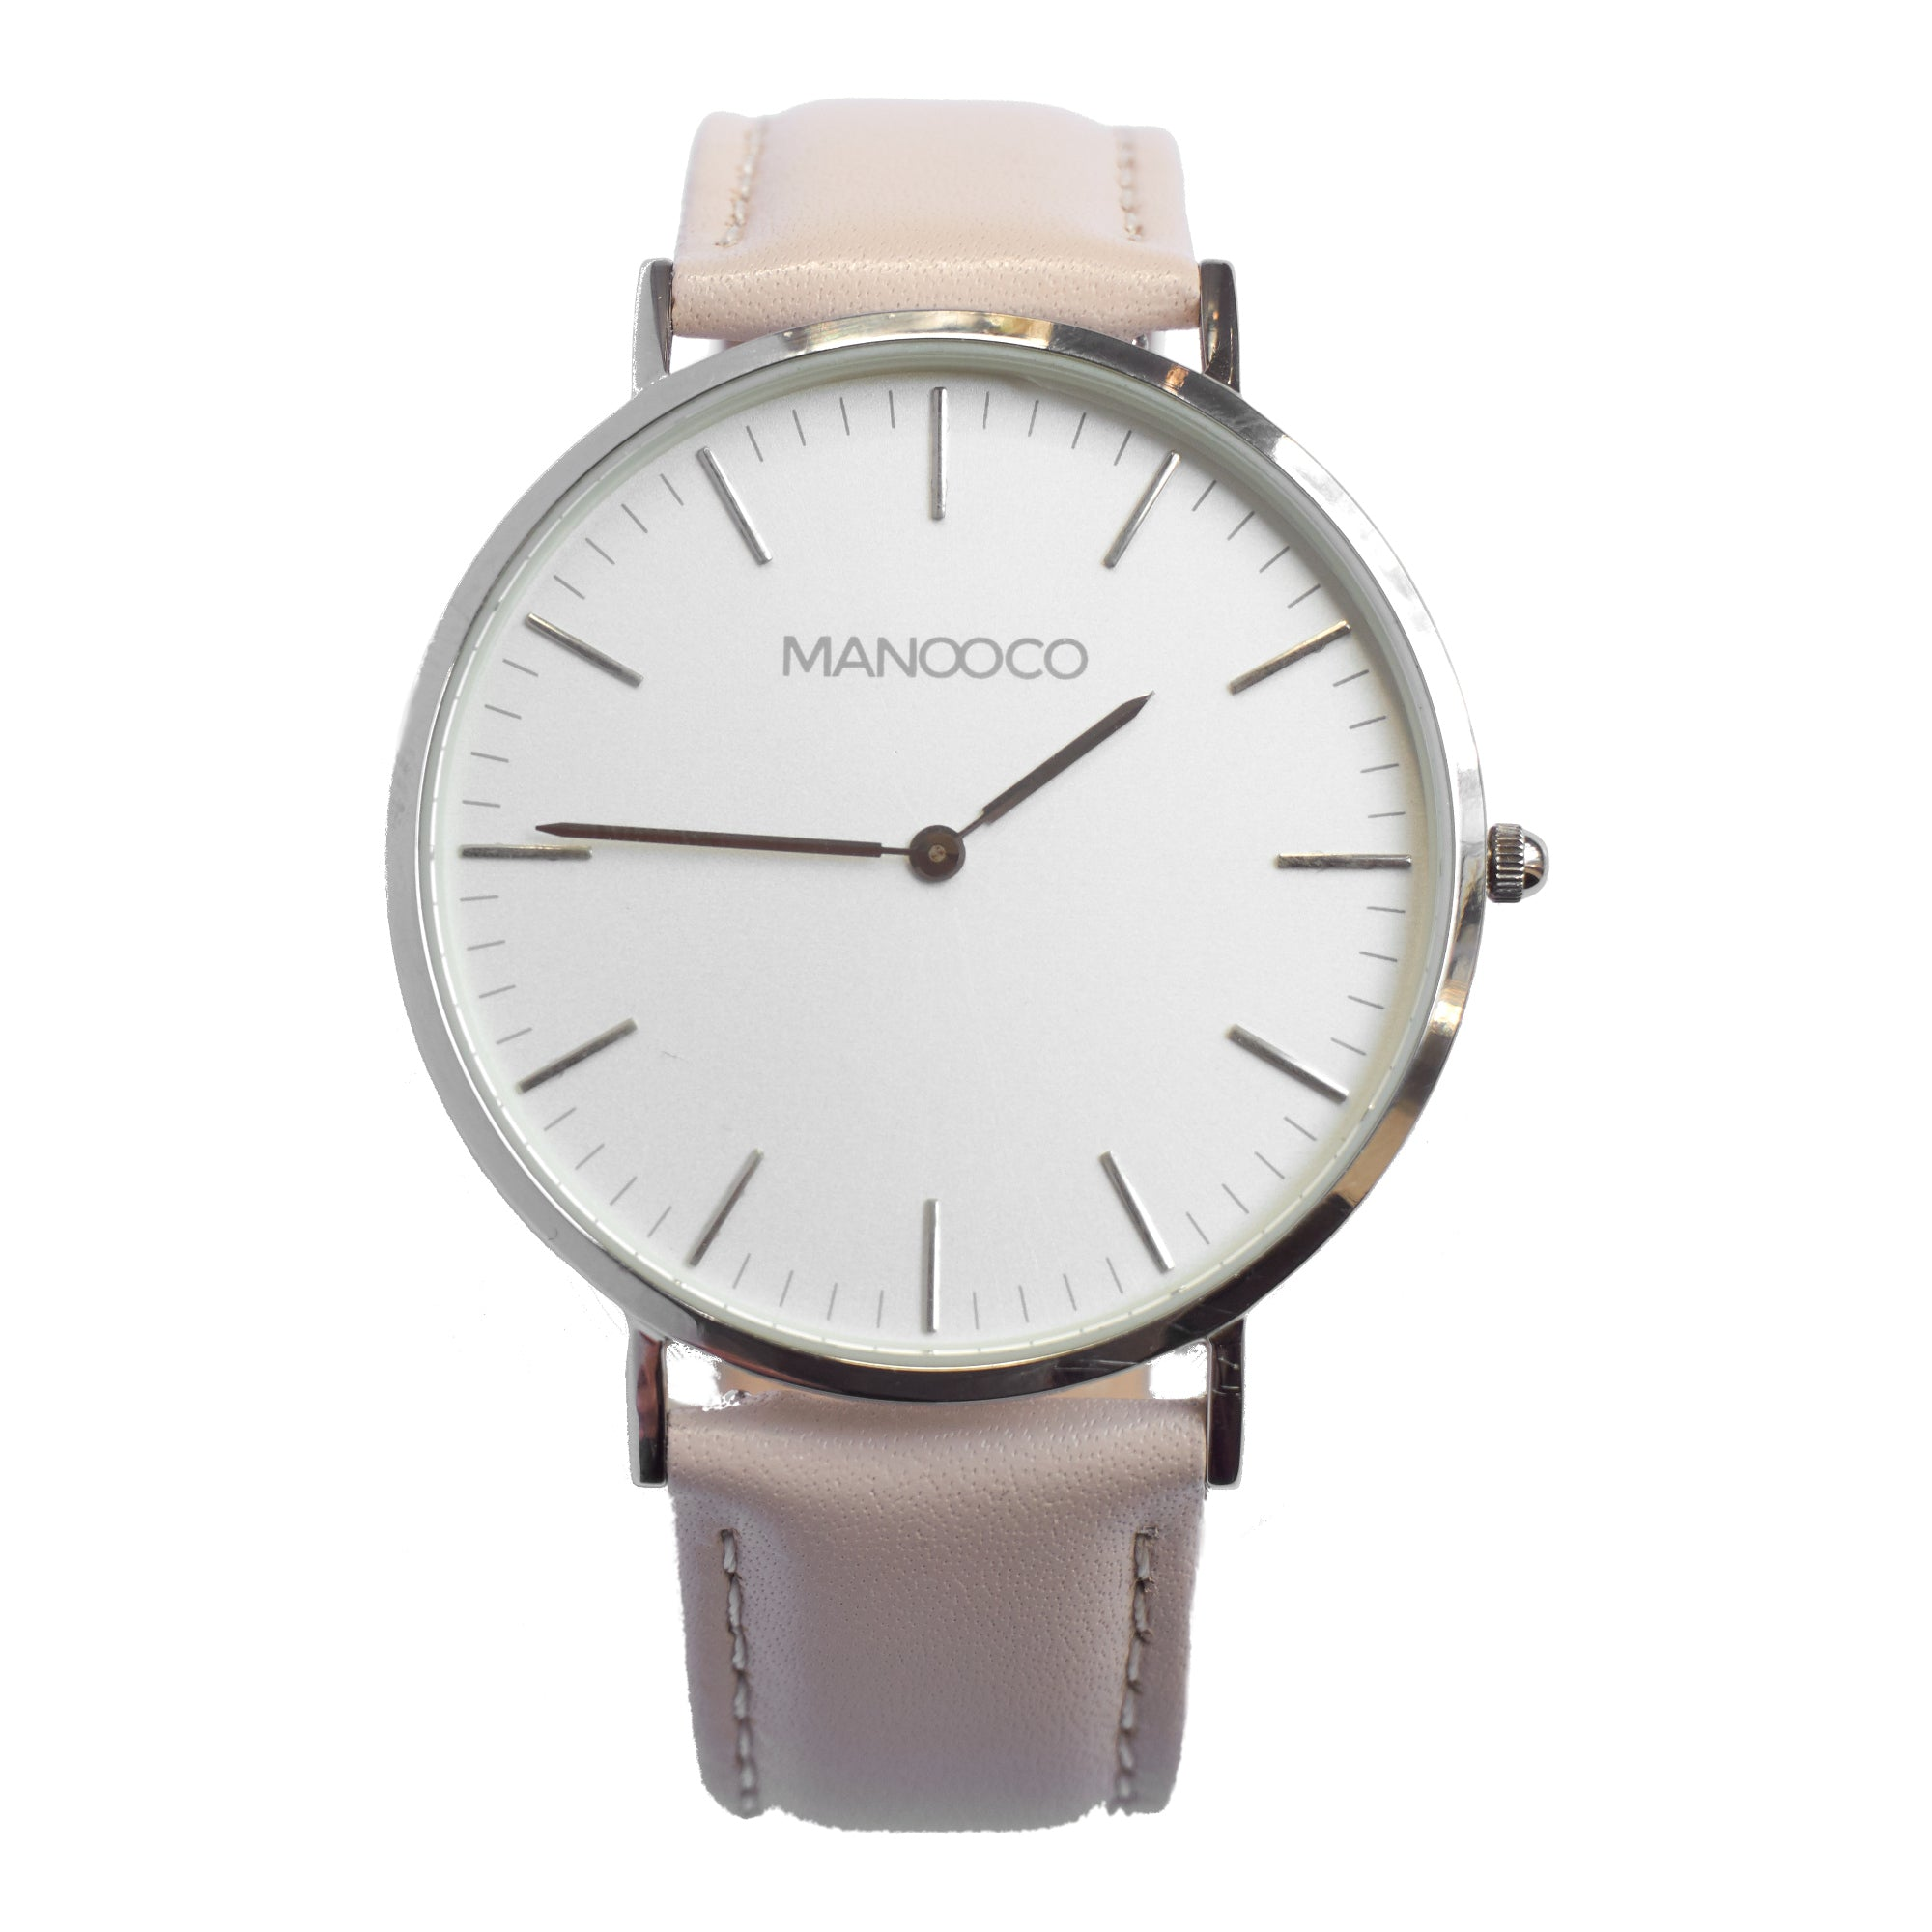 Zephyr Silver / Beige Leather - Watch - MANOOCO - Watch - manooco